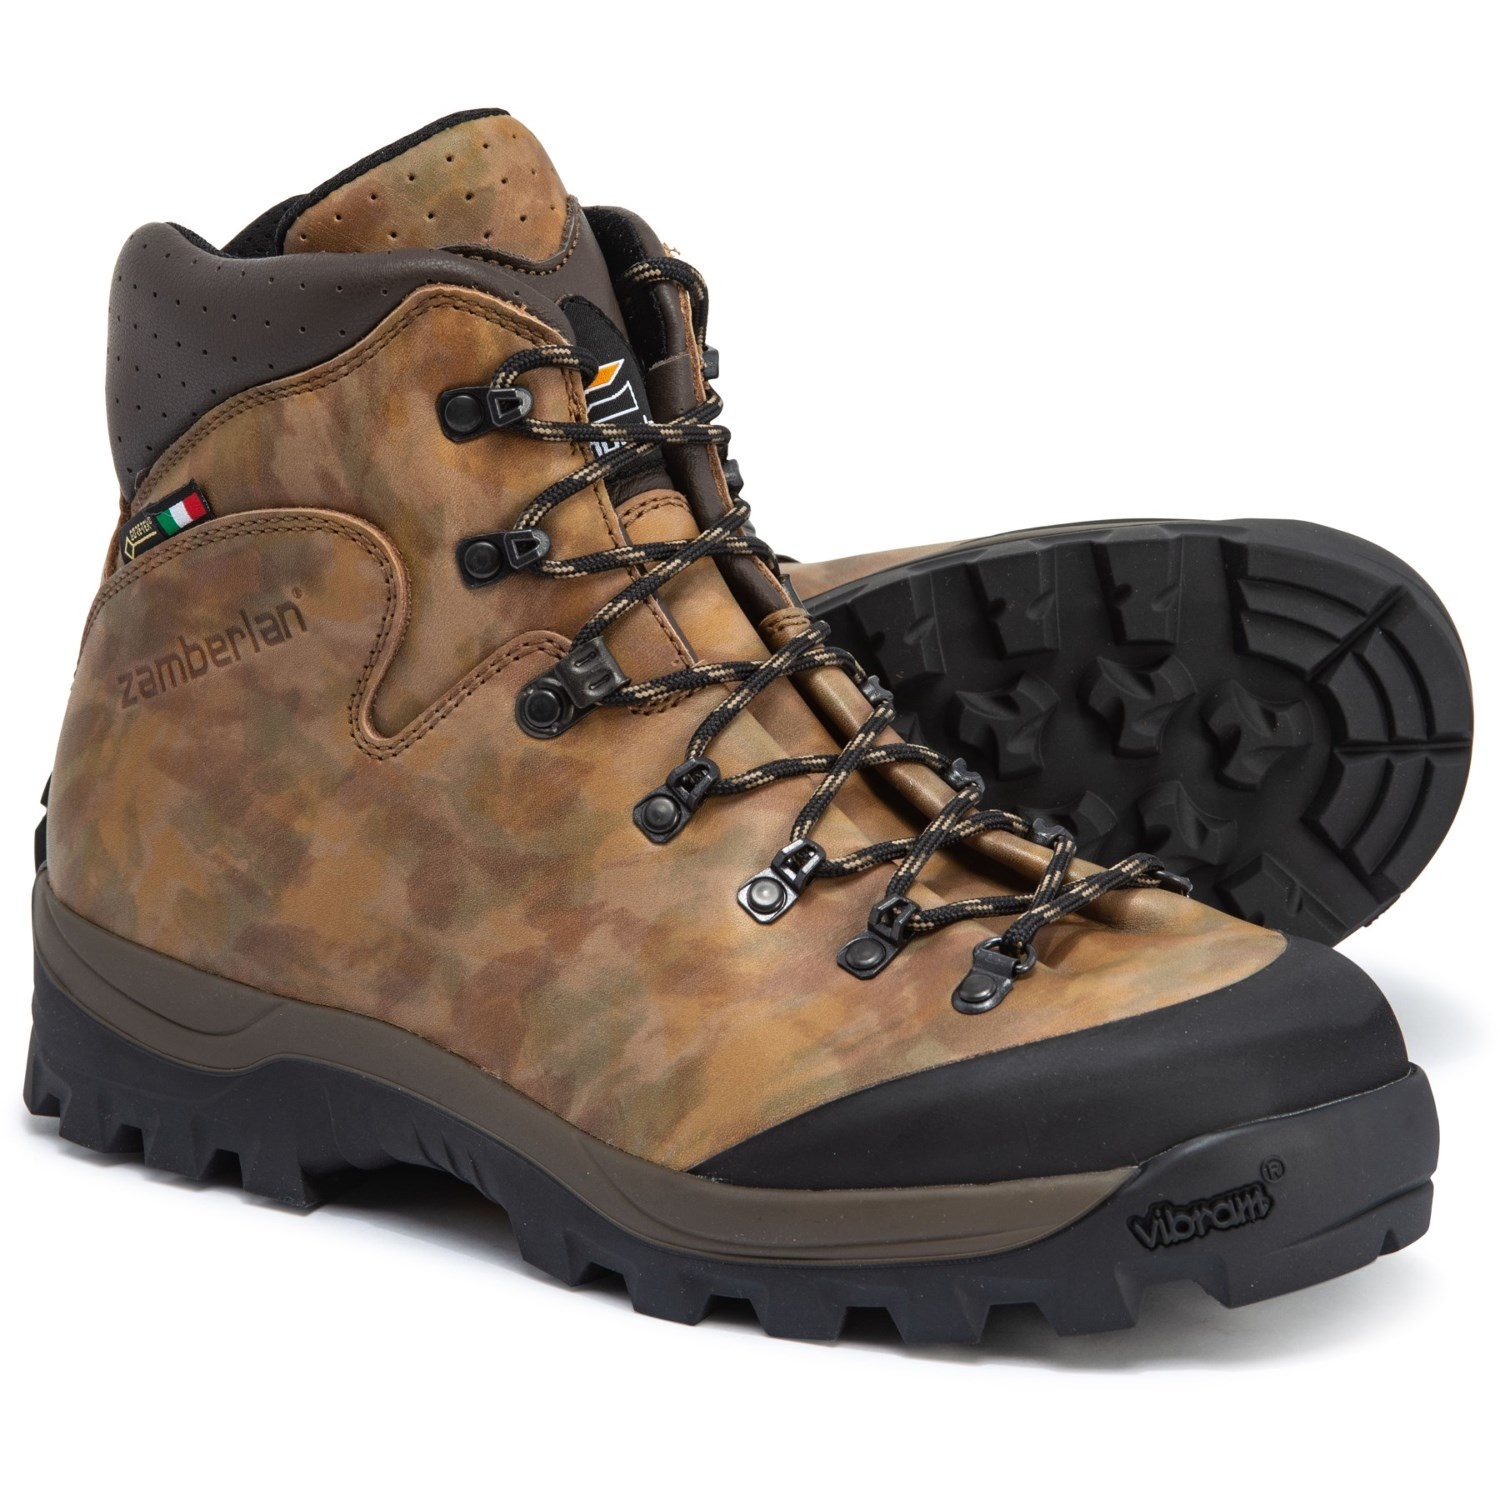 Zamberlan Made in Italy Haka Gore Tex® RR Hunting Boots Waterproof (For Men)